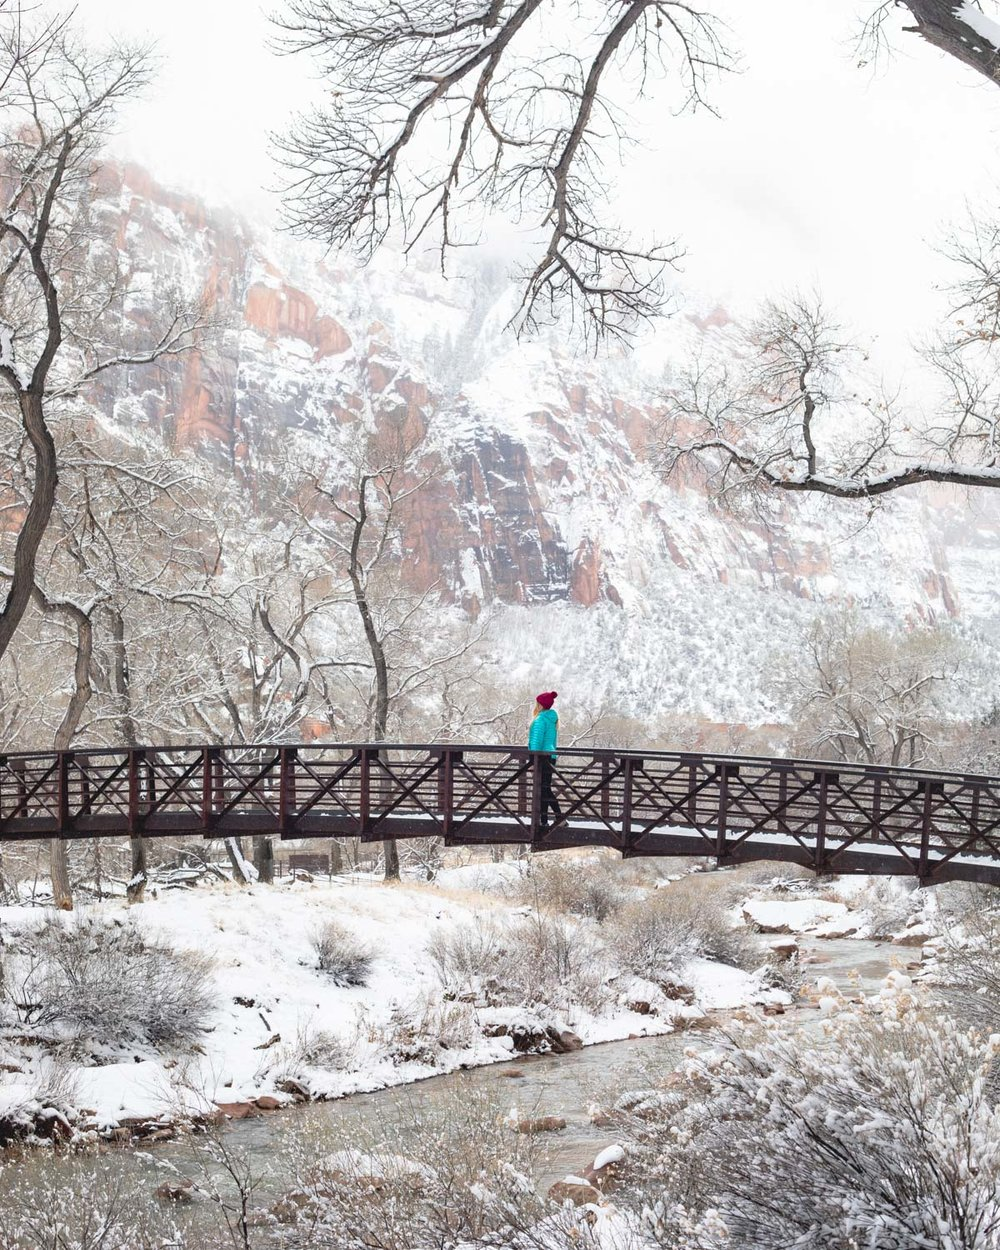 Benefits of Zion National Park in Winter